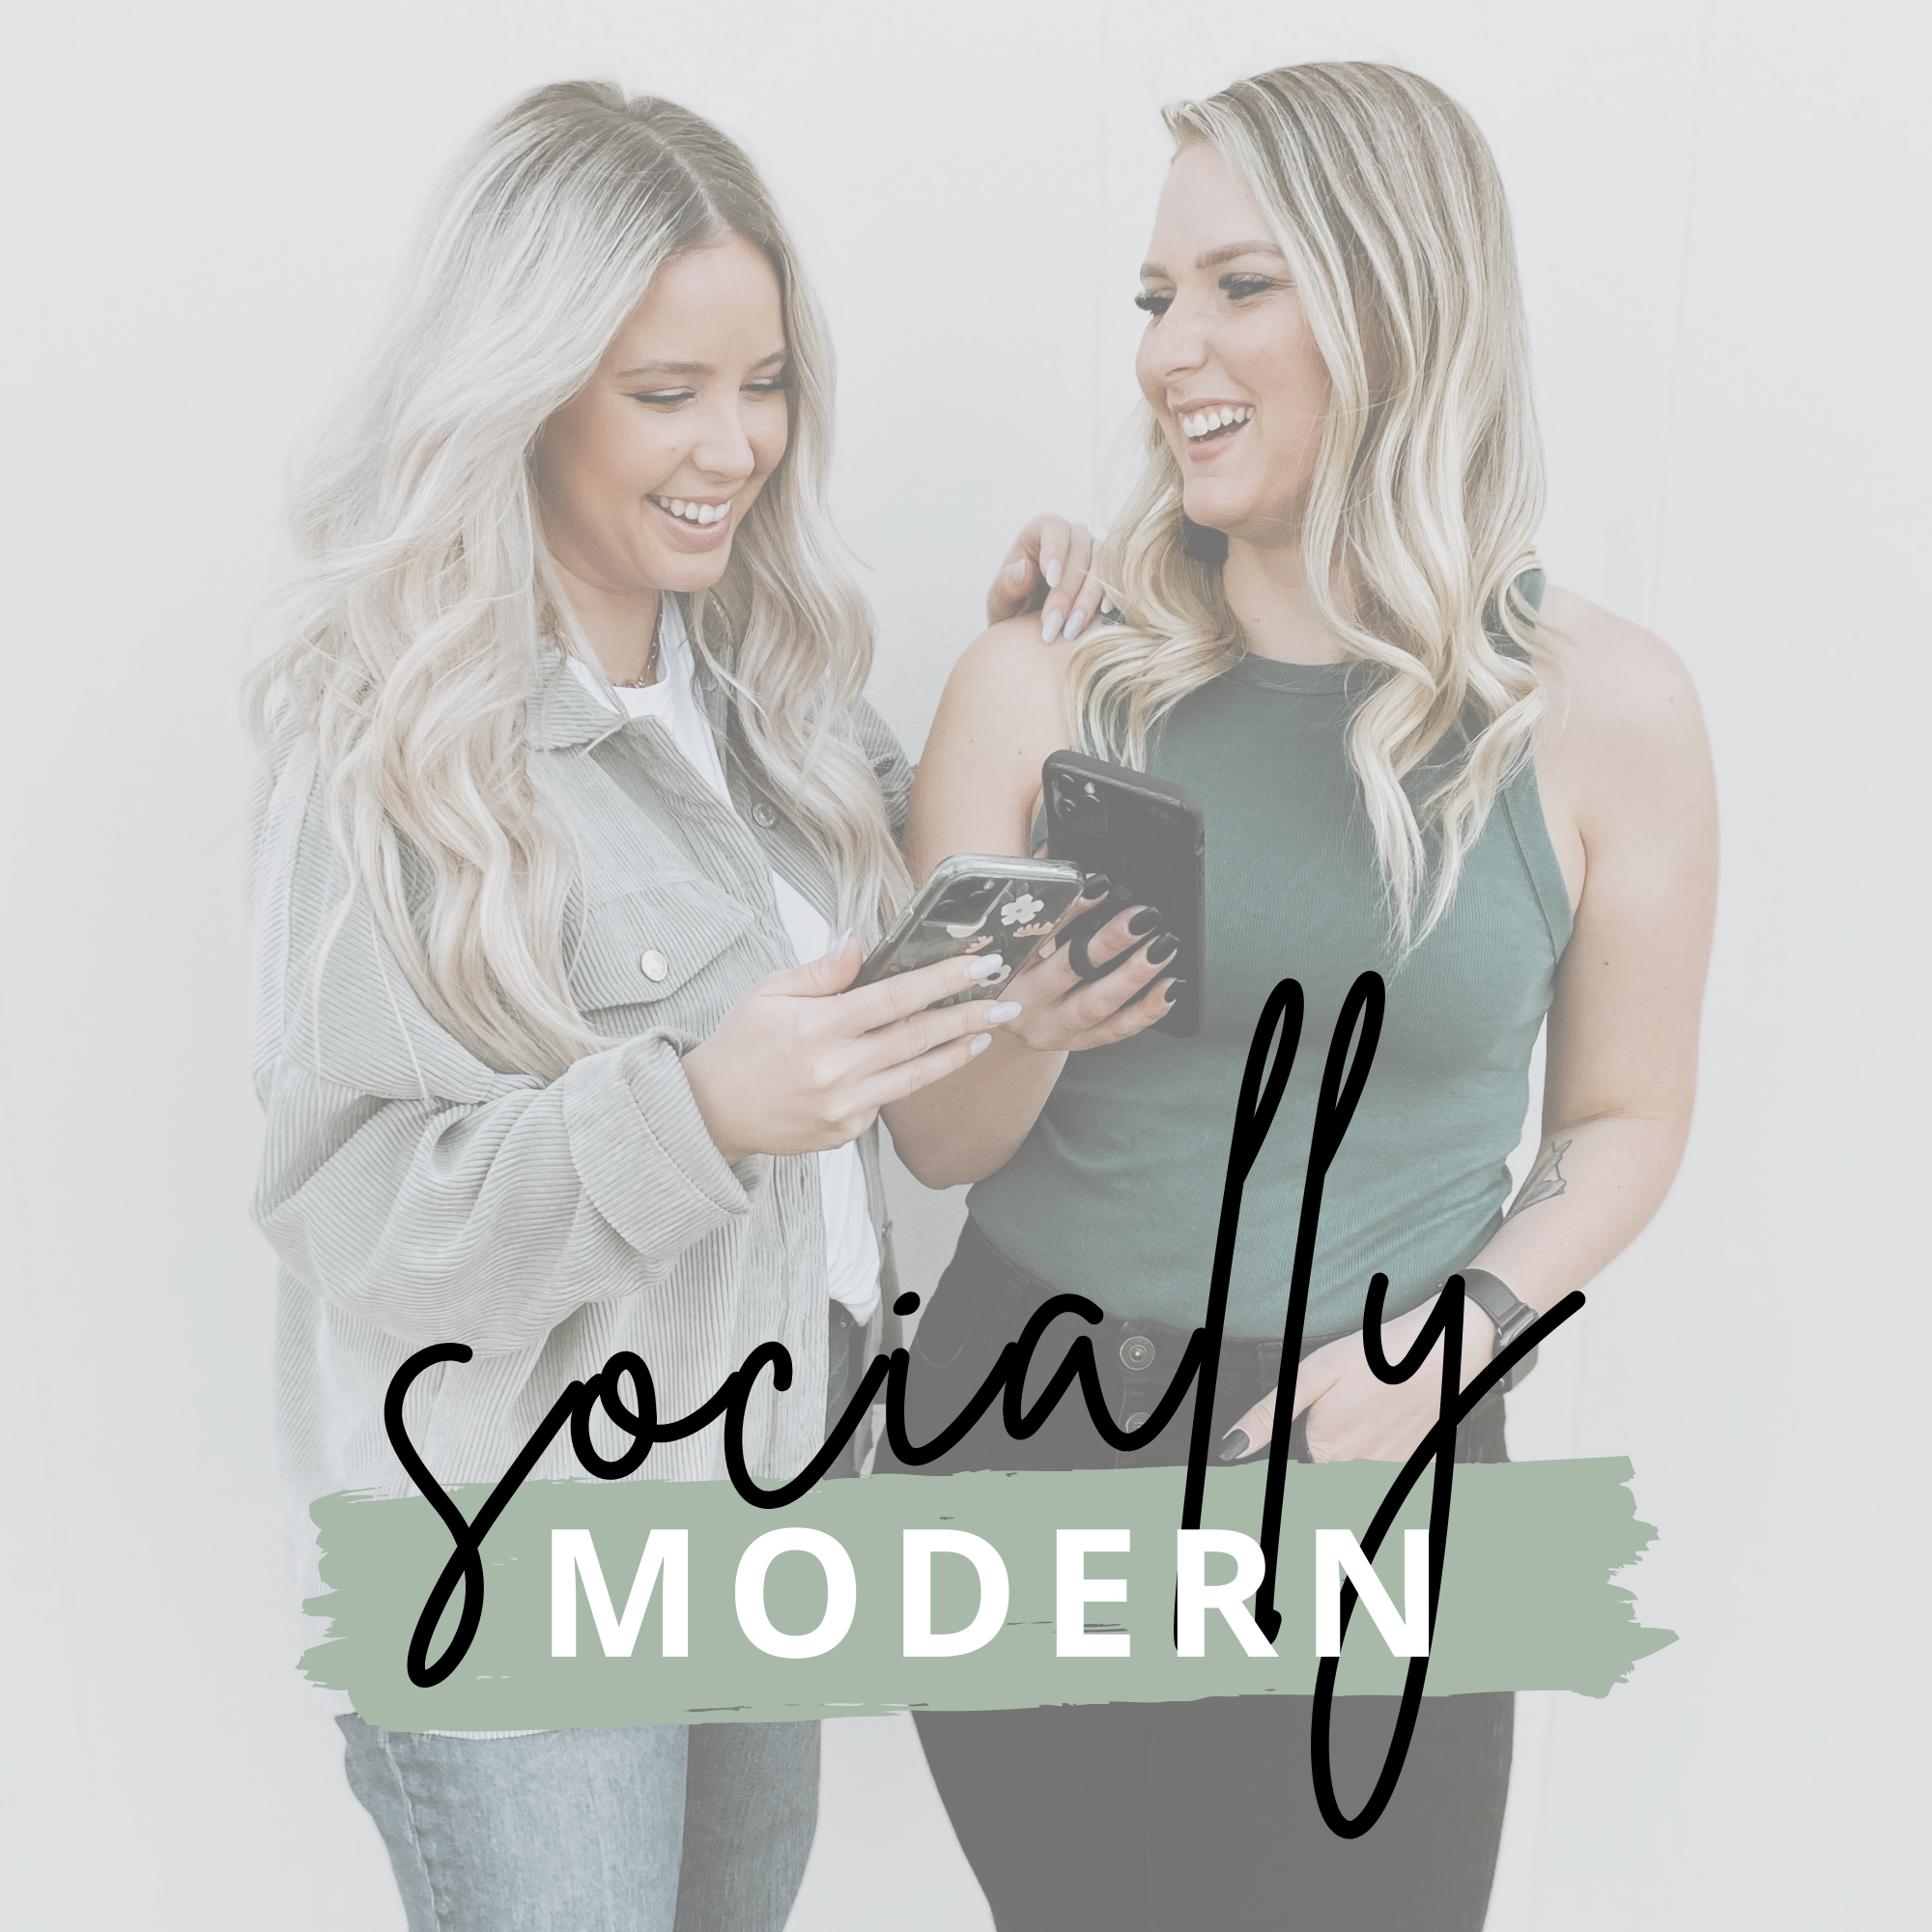 Socially Modern with Stephanie Mainville & Jessie Lockhart   A Show for Real Estate Agents and Small Business Owners to Learn About Modern Social Media Trends and Strategies